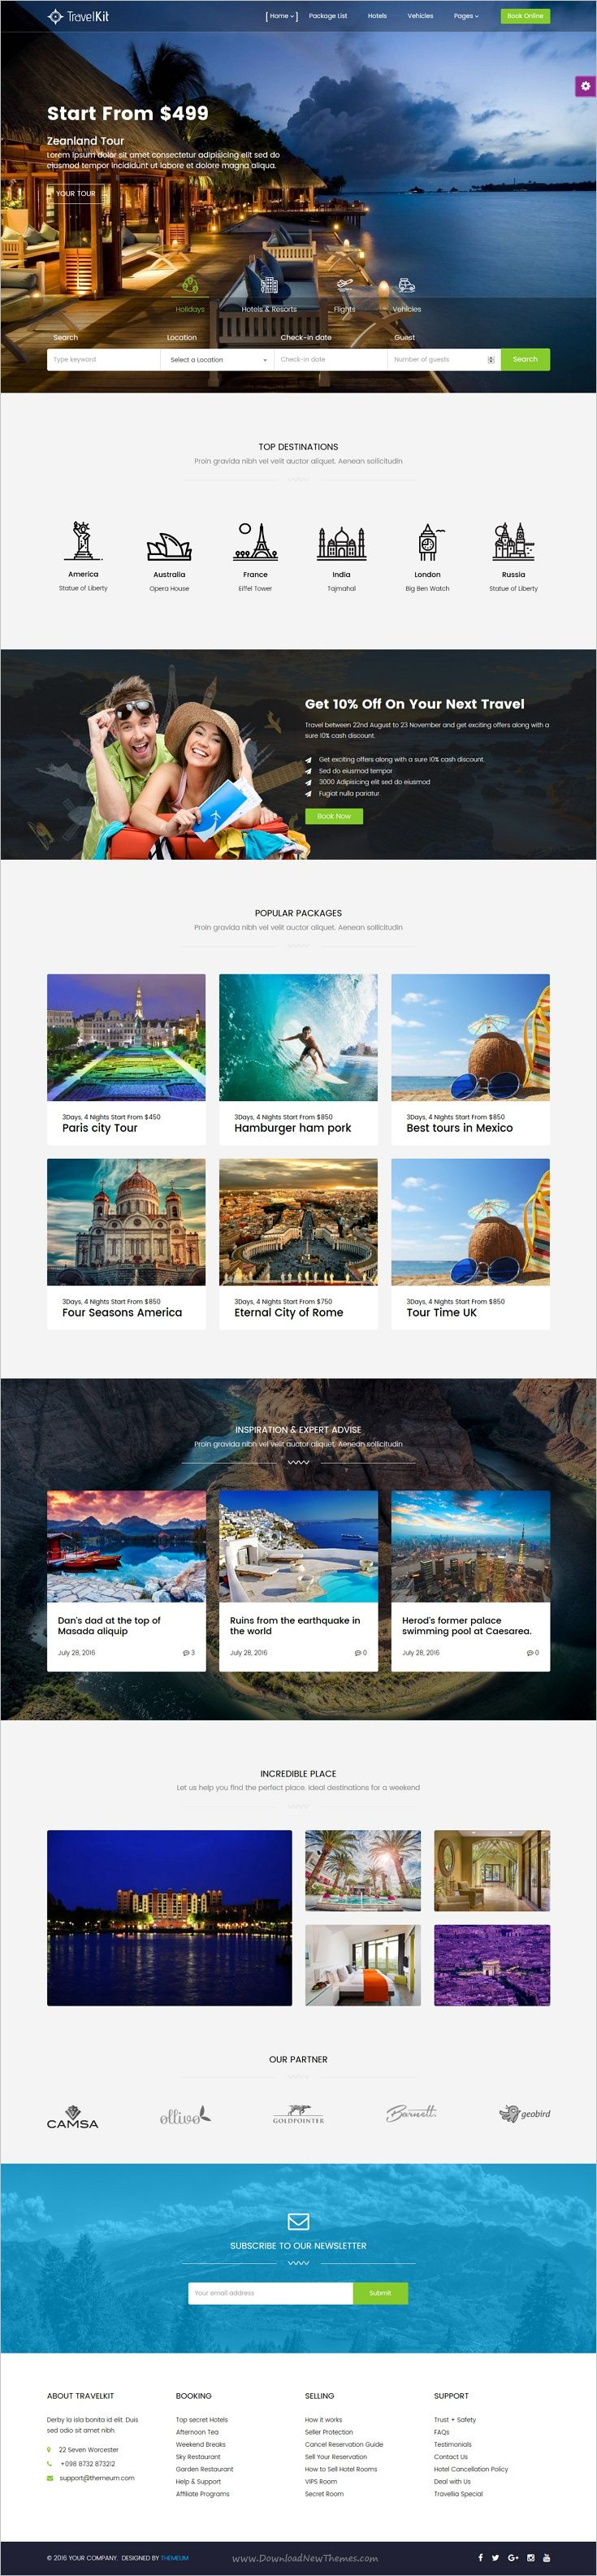 TravelKit is a wonderful responsive #WordPress 5x theme for the #tourism sector, #travel agencies, tour arrangement #companies website download now➩  https://themeforest.net/item/travelkit-the-fullfledged-tour-travel-wordpress-theme/18443964?ref=Datasata